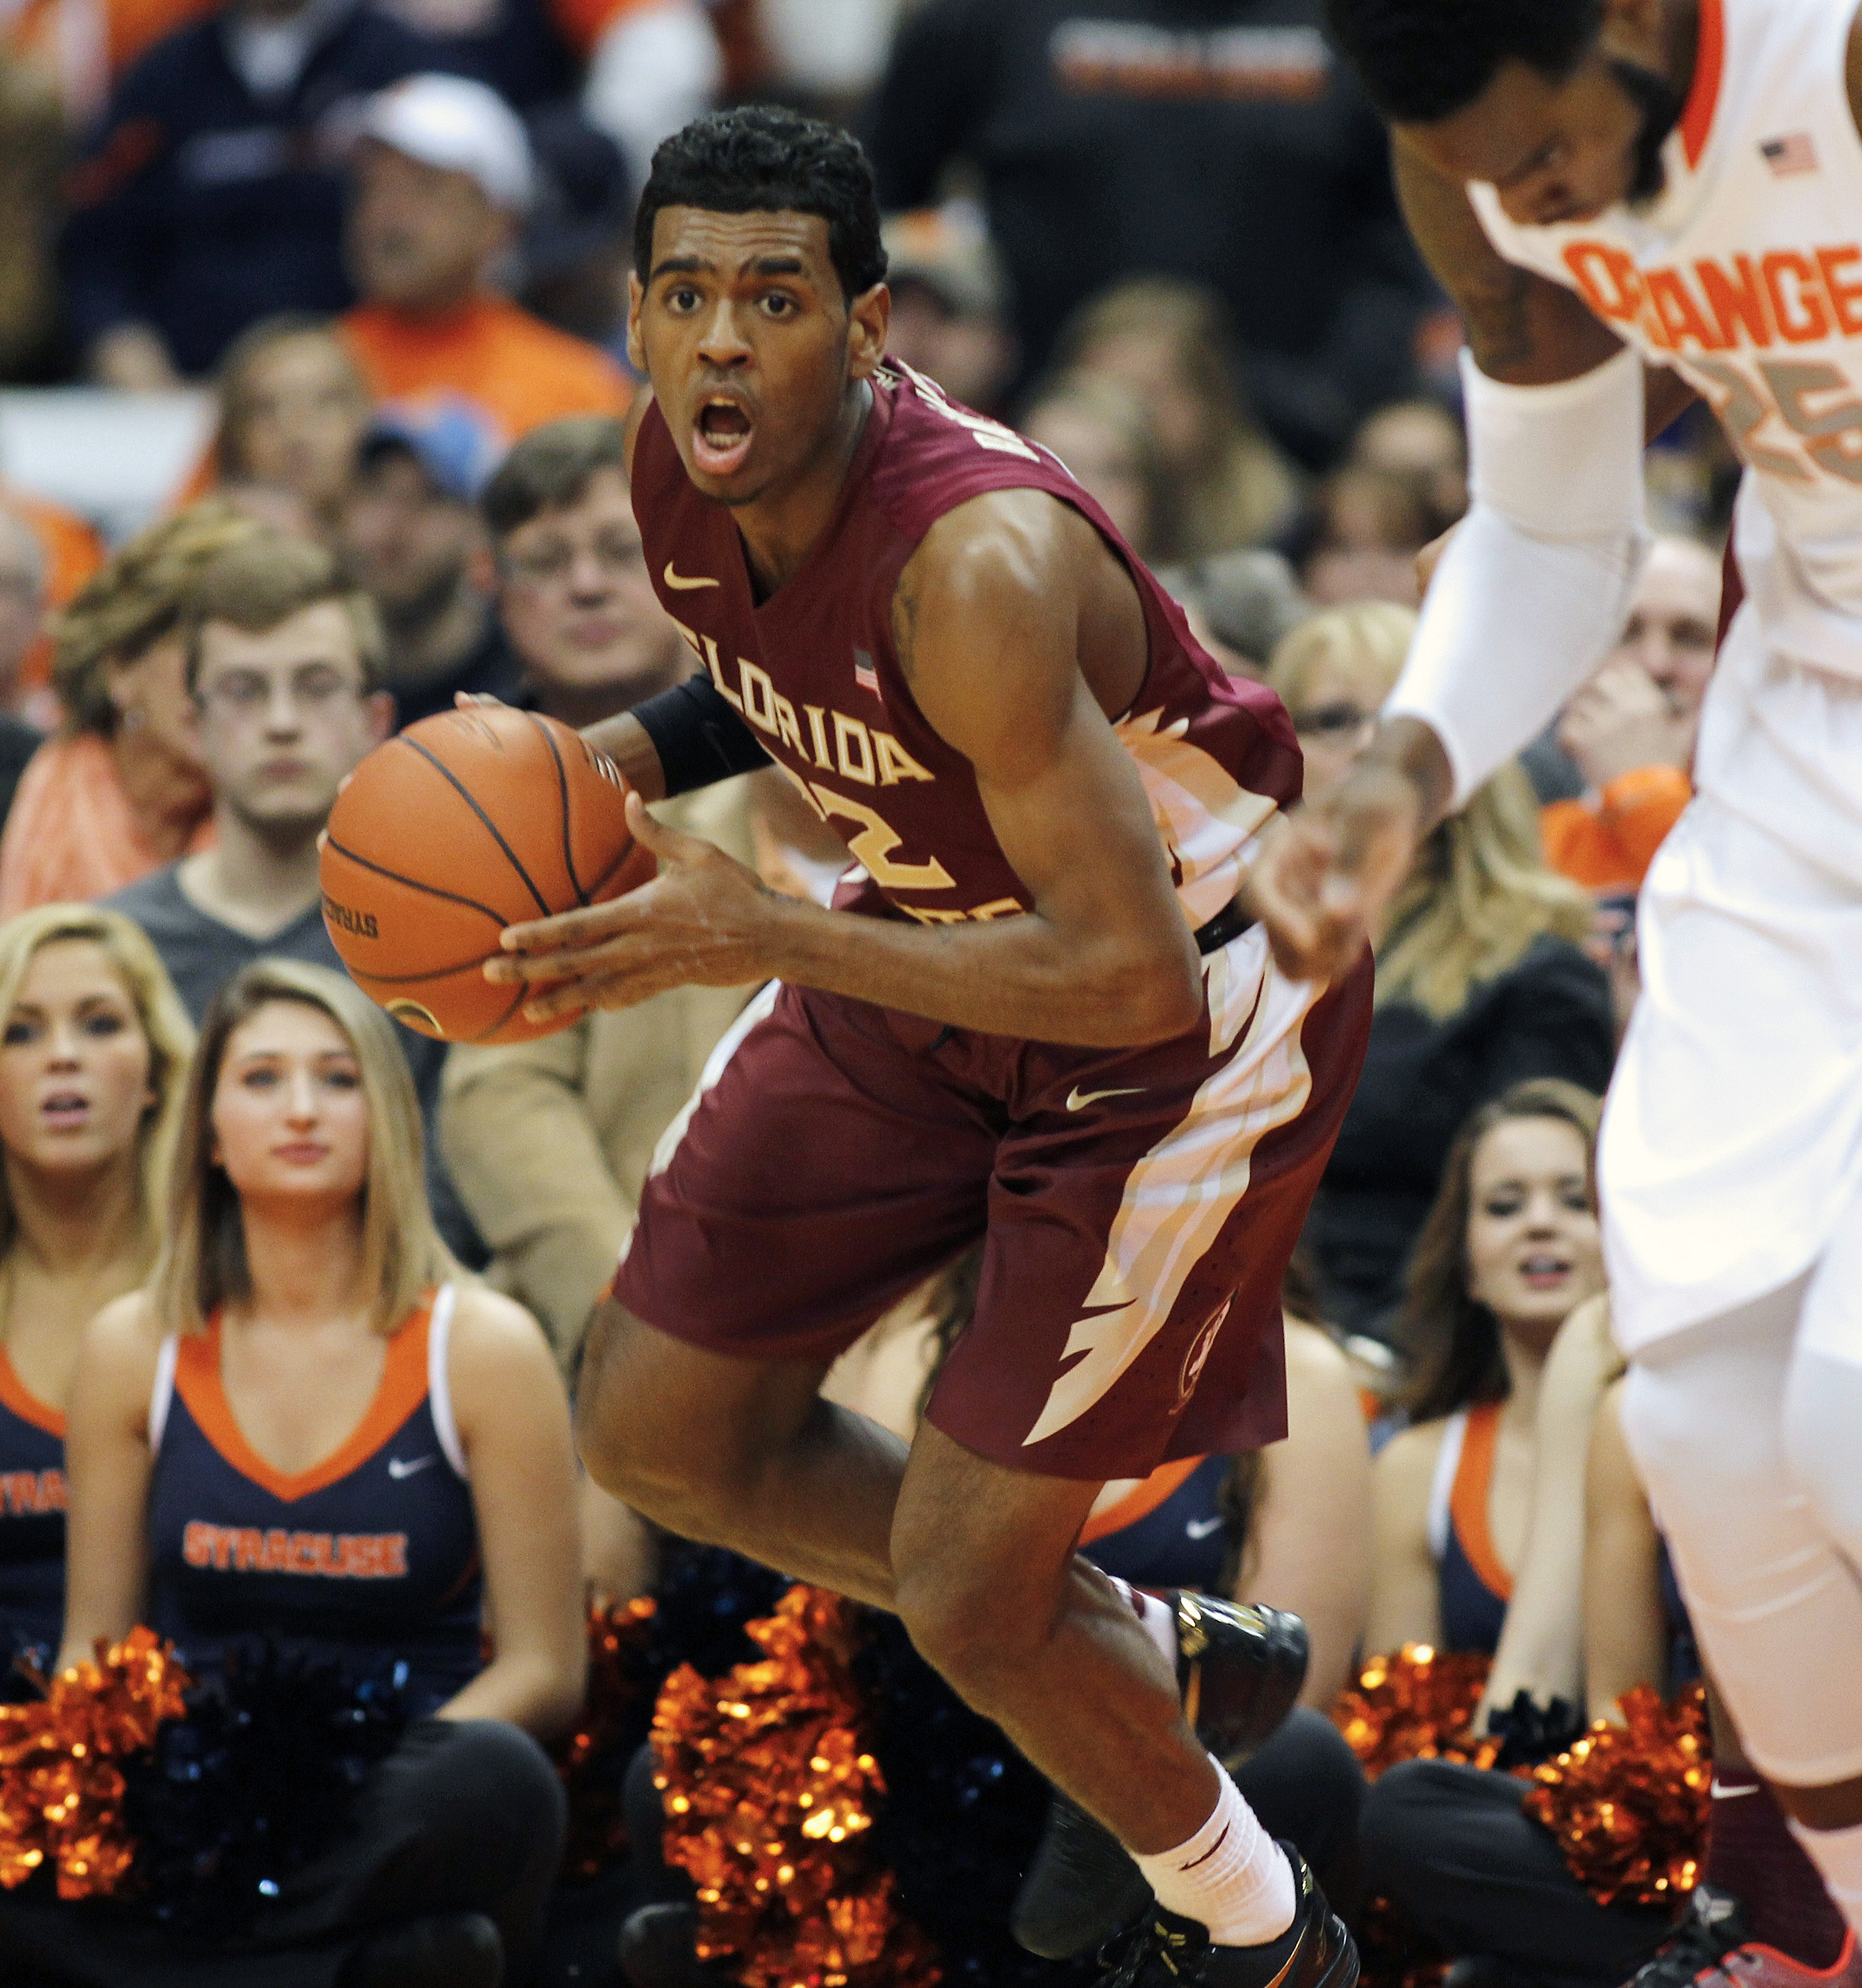 FILE - In this Jan. 11, 2015, file photo, Florida State's Xavier Rathan-Mayes looks to pass the ball down court in the first half of an NCAA college basketball game against Syracuse in Syracuse, N.Y. Xavier Rathan-Mayes maturity as a point guard has gone